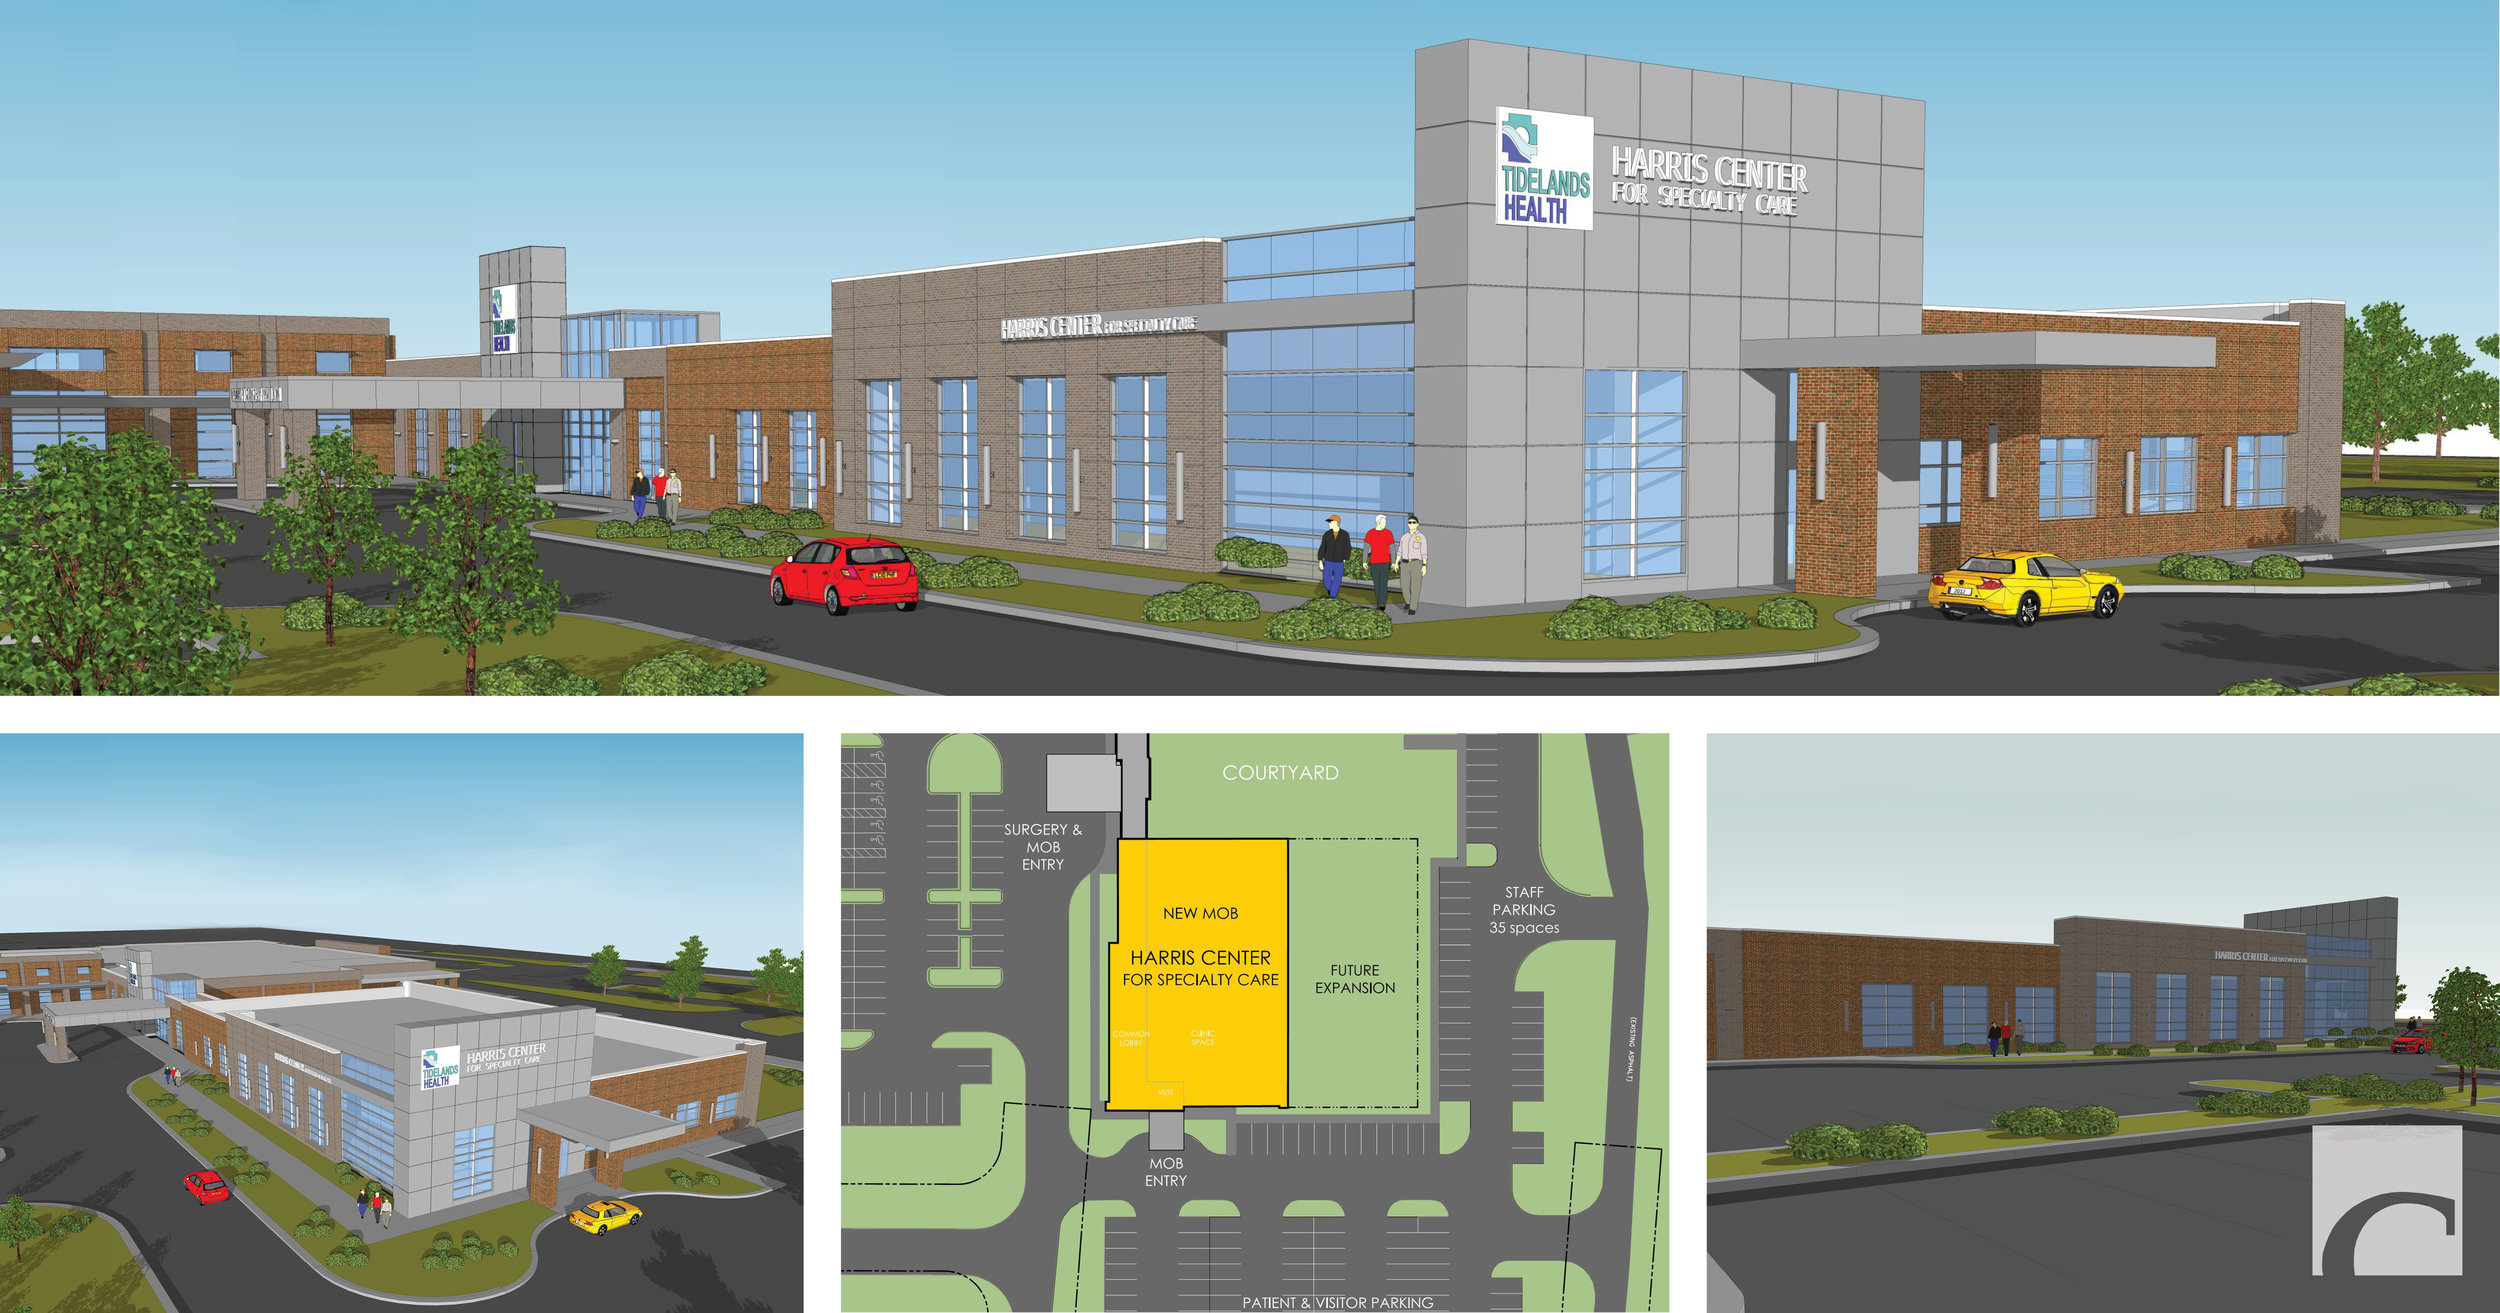 Harris Center for Specialty Care Renderings